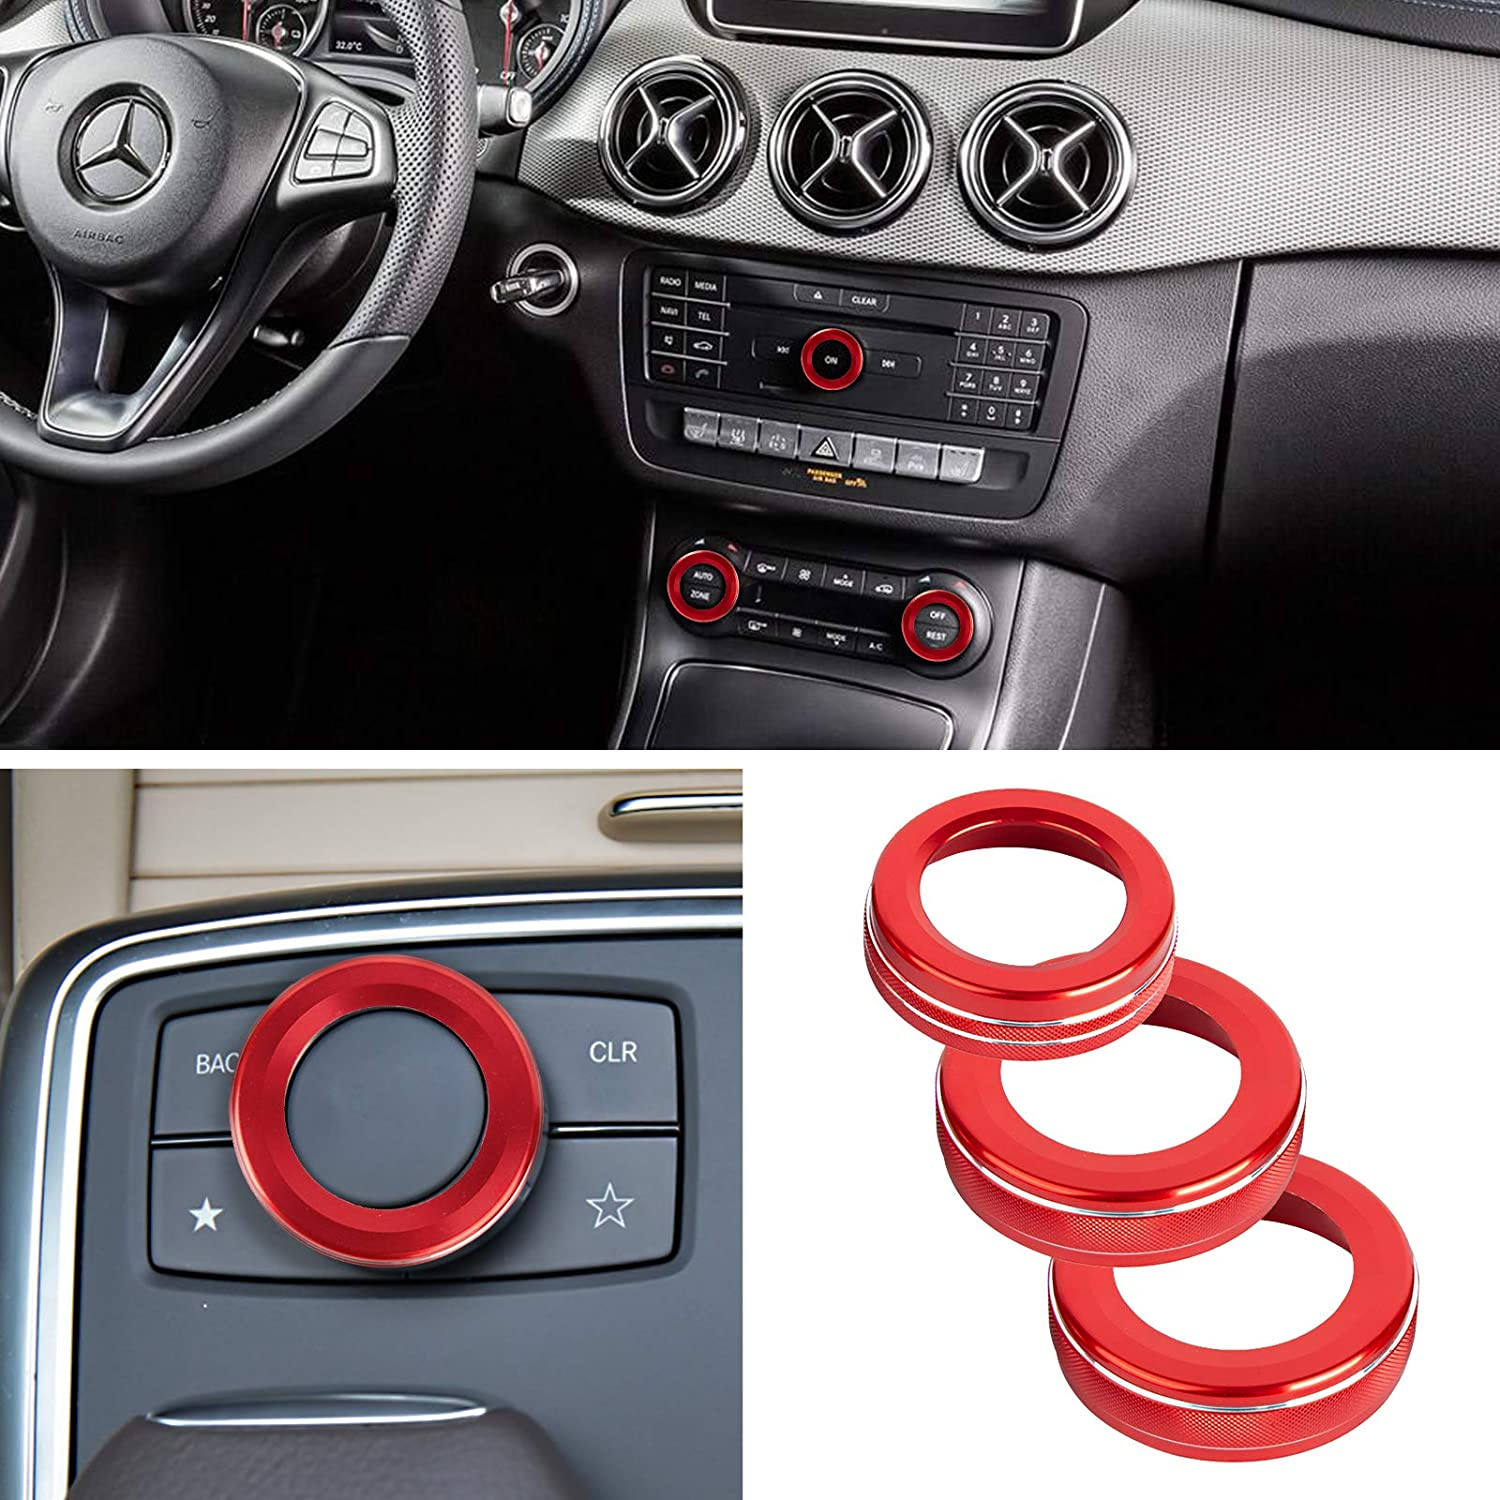 Red 3 Pack Audio Volume Knob Switch Button Cover Ring for Mercedes-Benz A-Class B-Class E-Class GLK GLA CLA GLE ML GL Car Accessories Decoration Aluminum Alloy Volume Adjustment Knob Button Ring